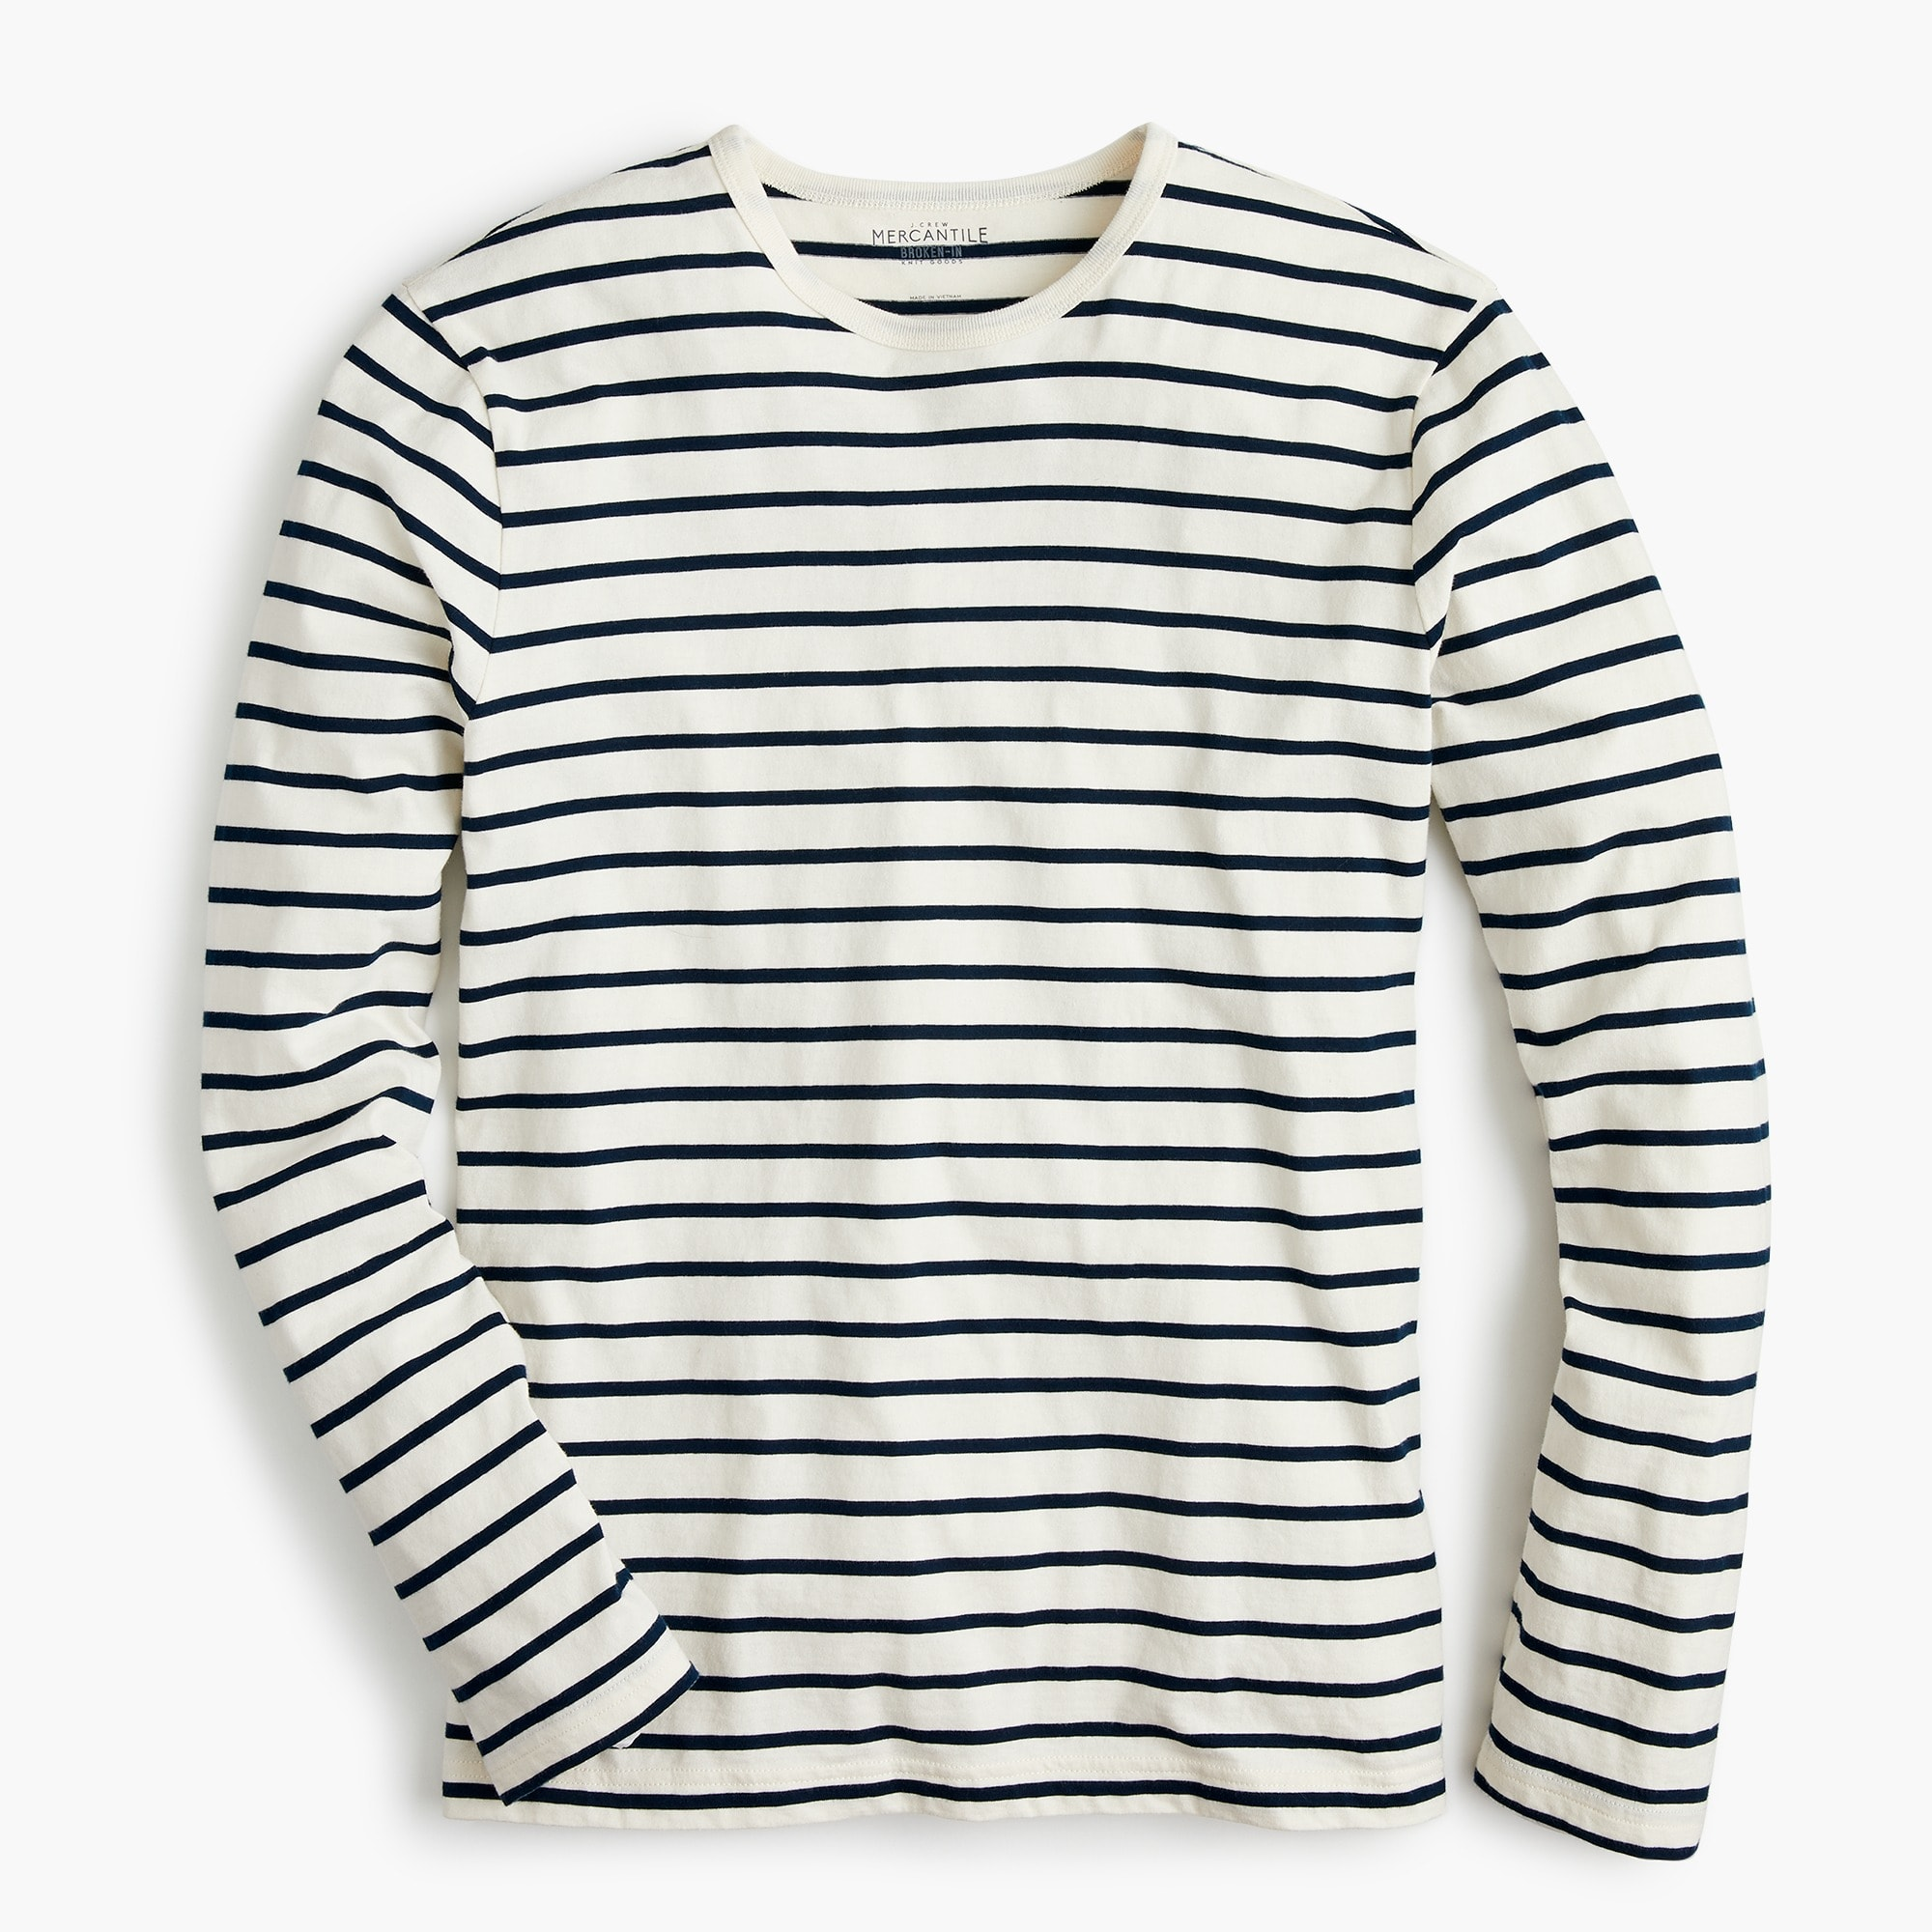 Classic J.Crew Mercantile Broken-in long-sleeve T-shirt in deck stripe